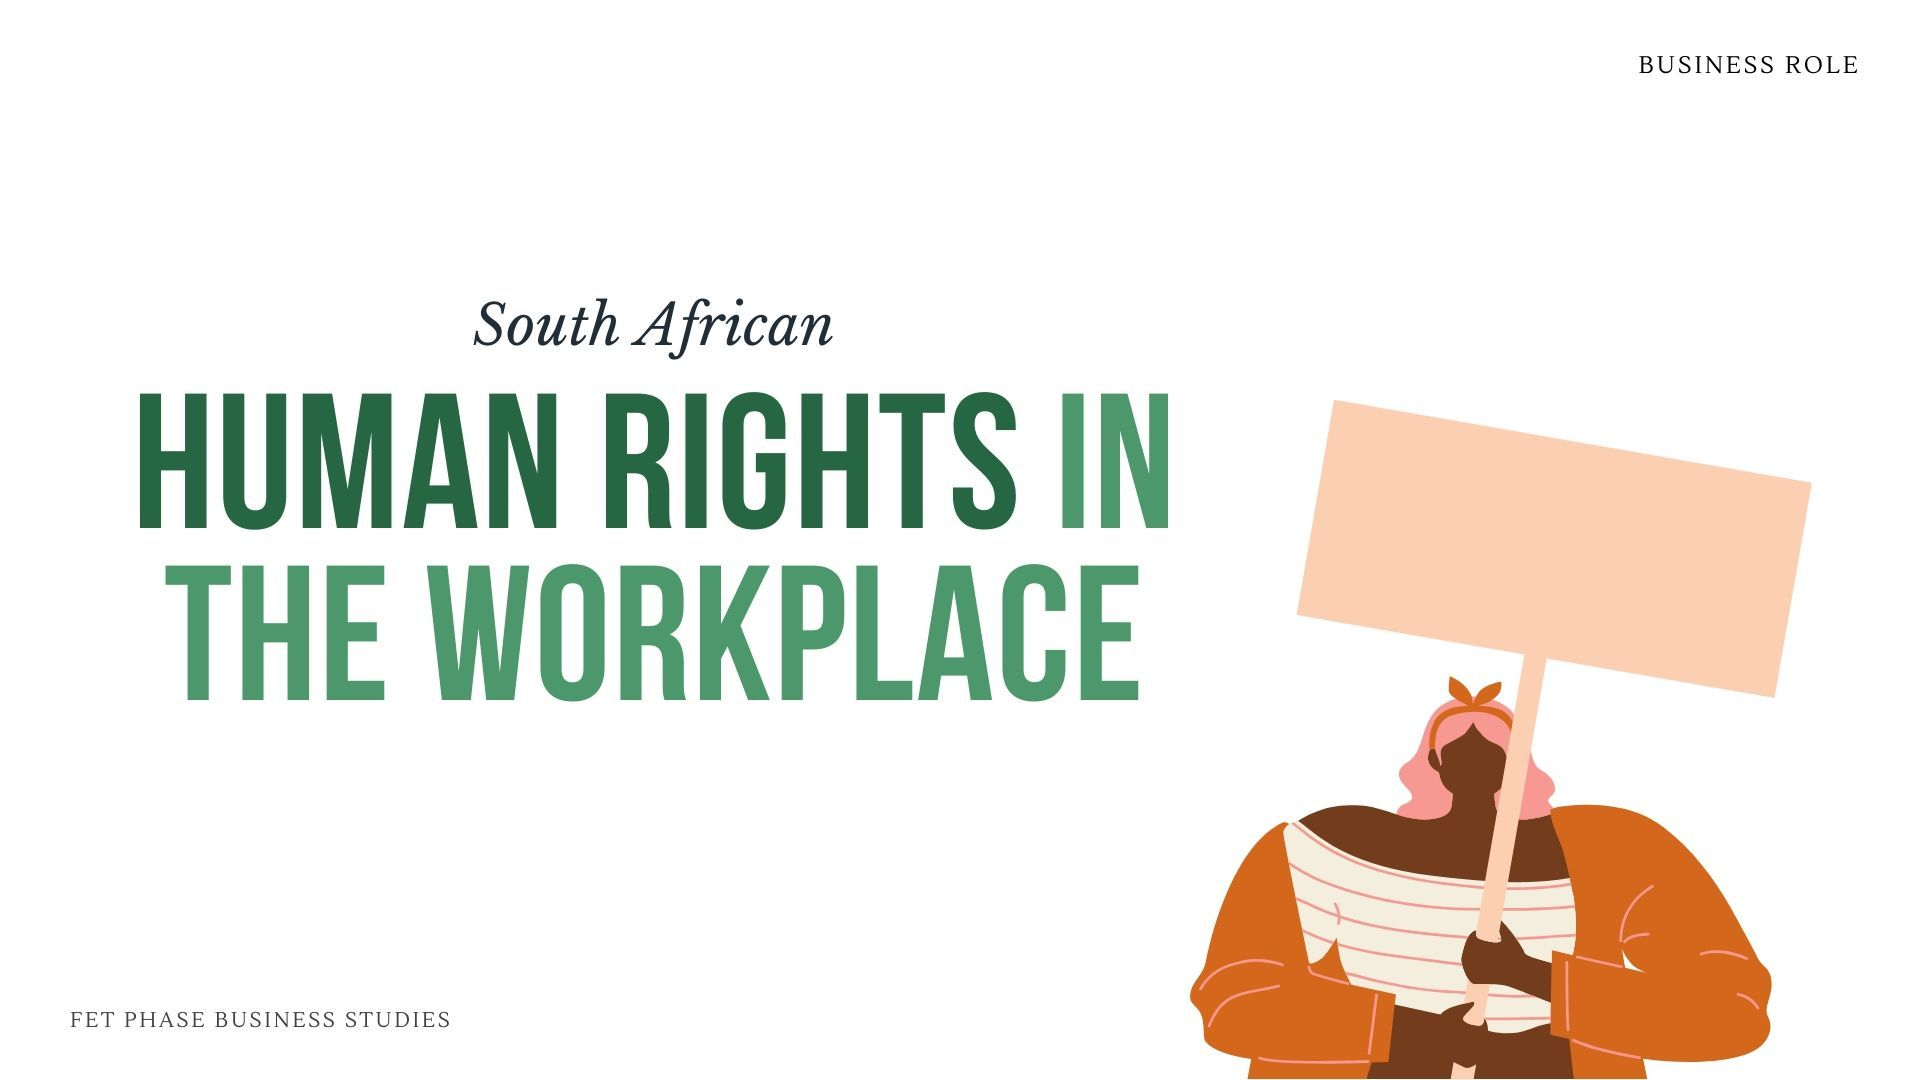 Grade 12 Exam Preparation Business Studies Click Here For The Definition Of South African Human R Human Rights Definition Business Studies Human Rights List